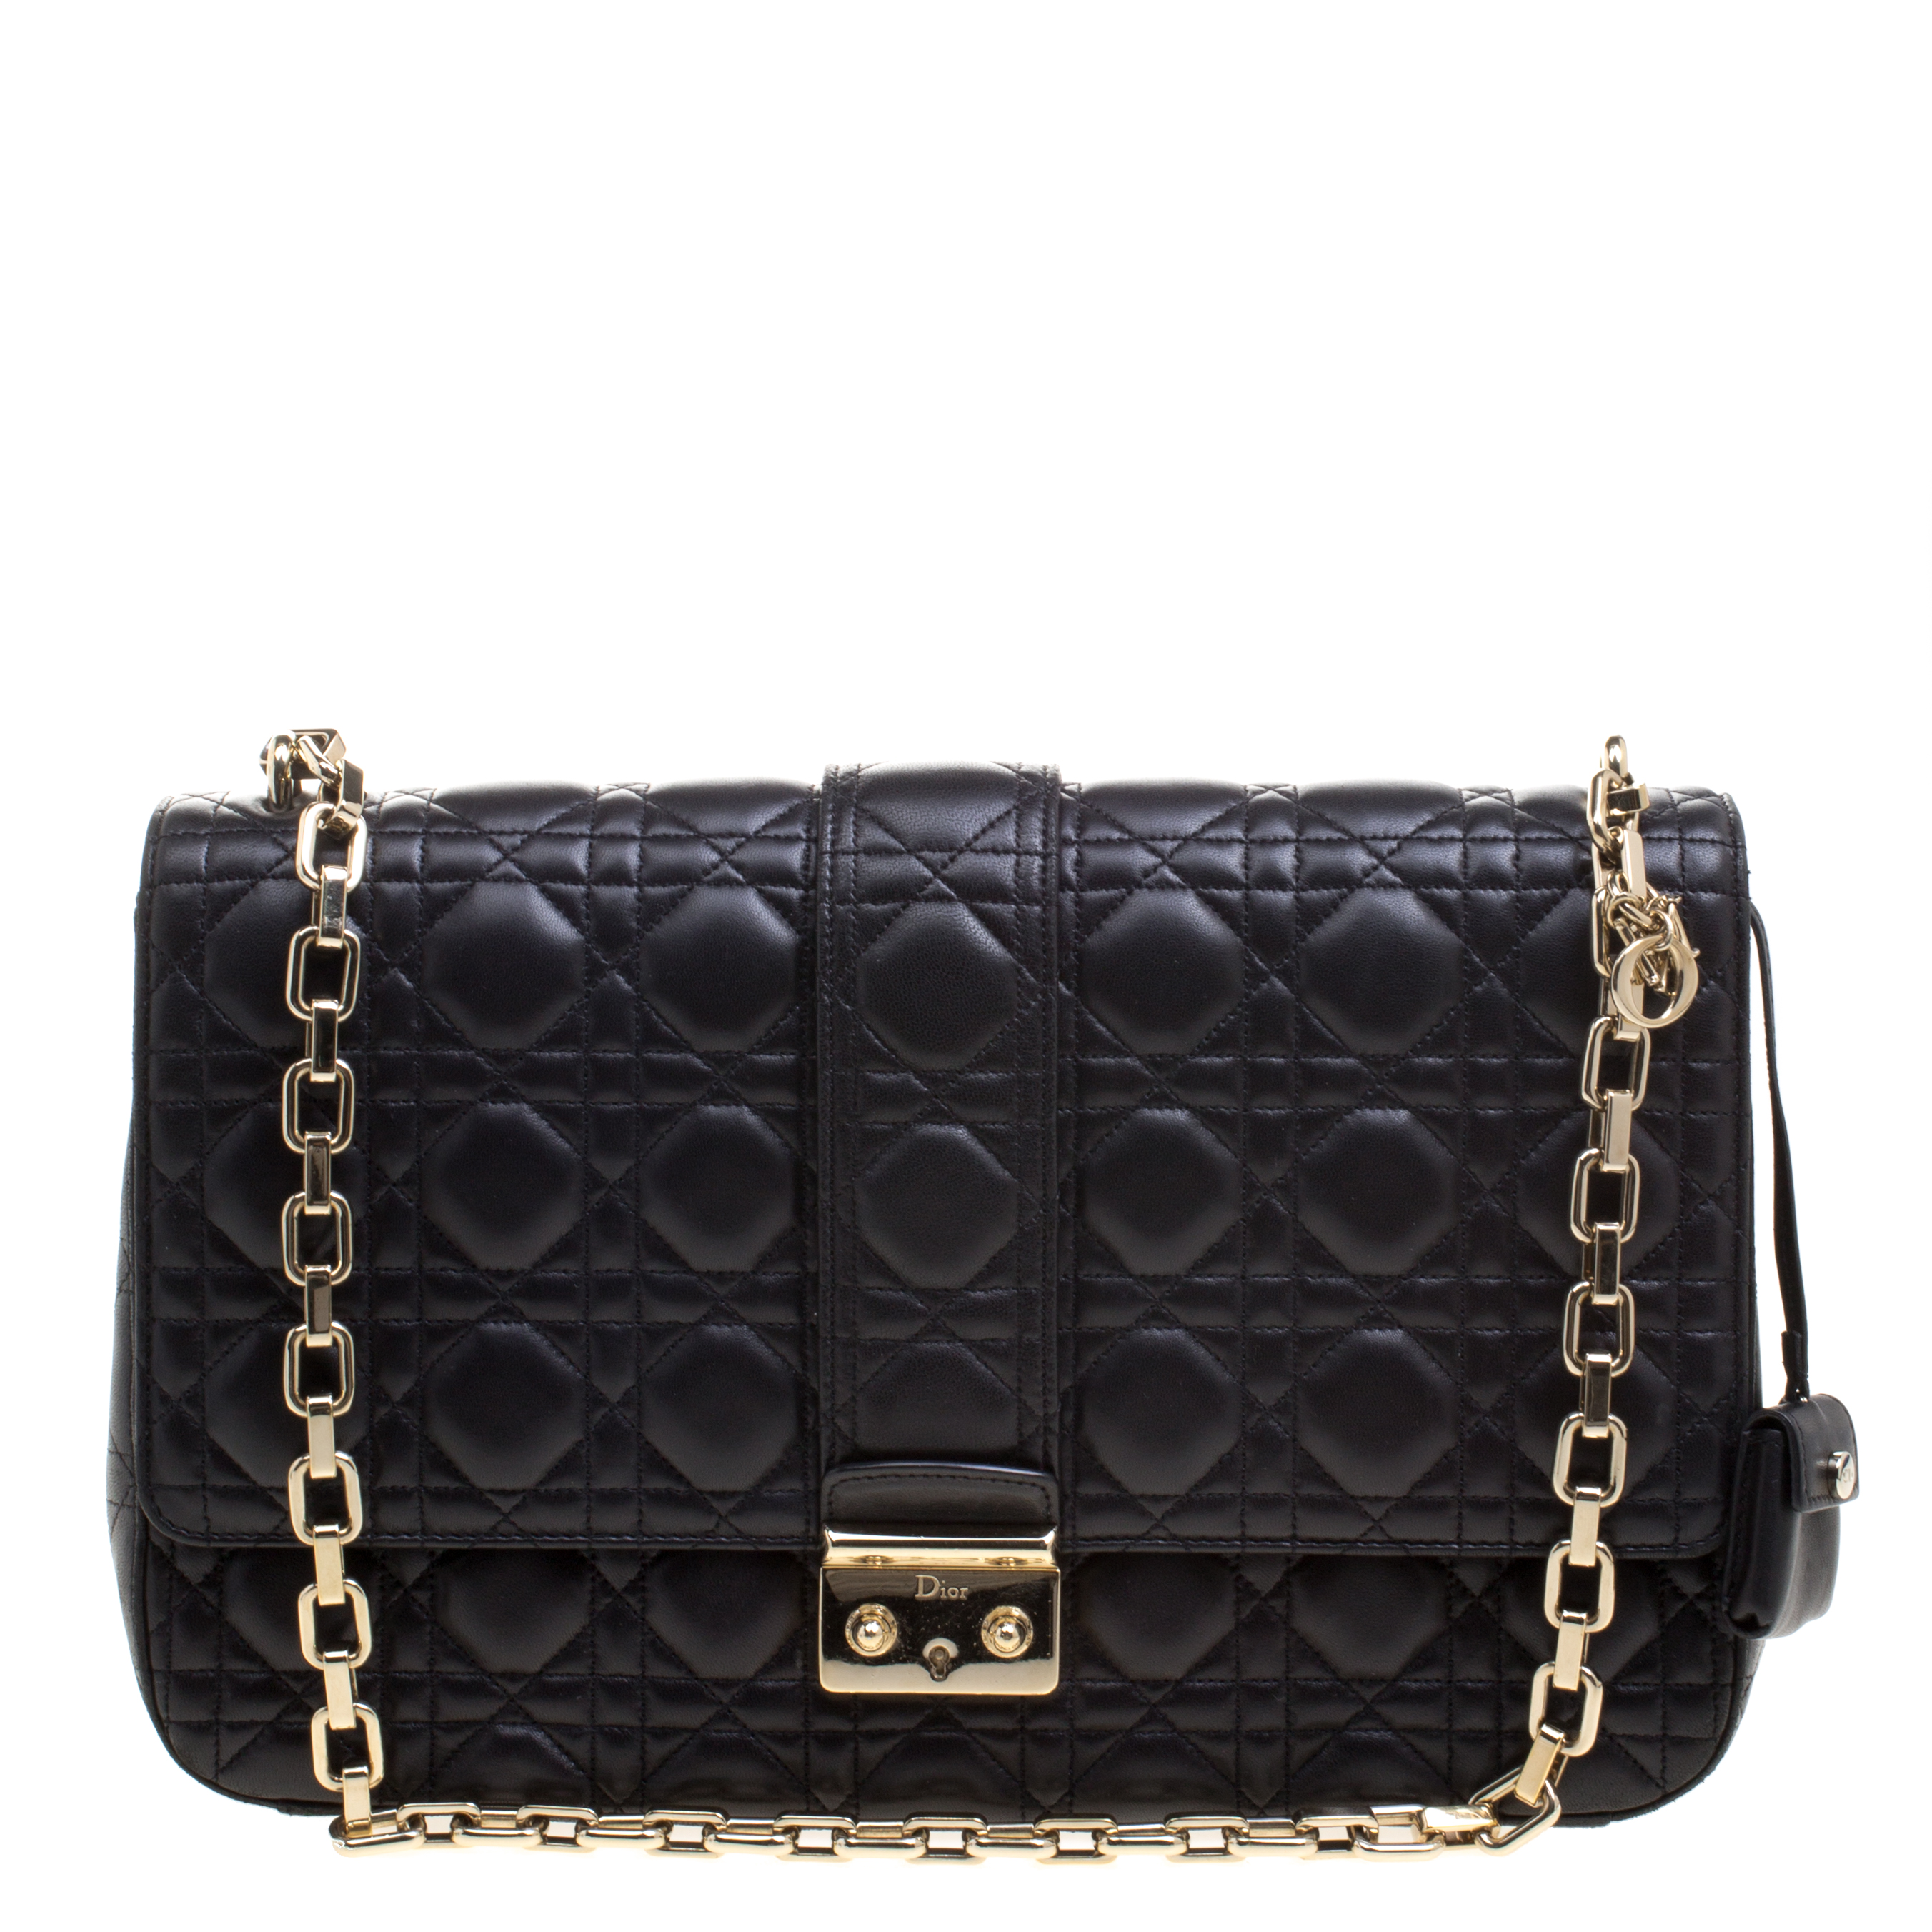 cadb6e4208c30 Buy Dior Black Quilted Leather Large Miss Dior Flap Bag 109869 at ...